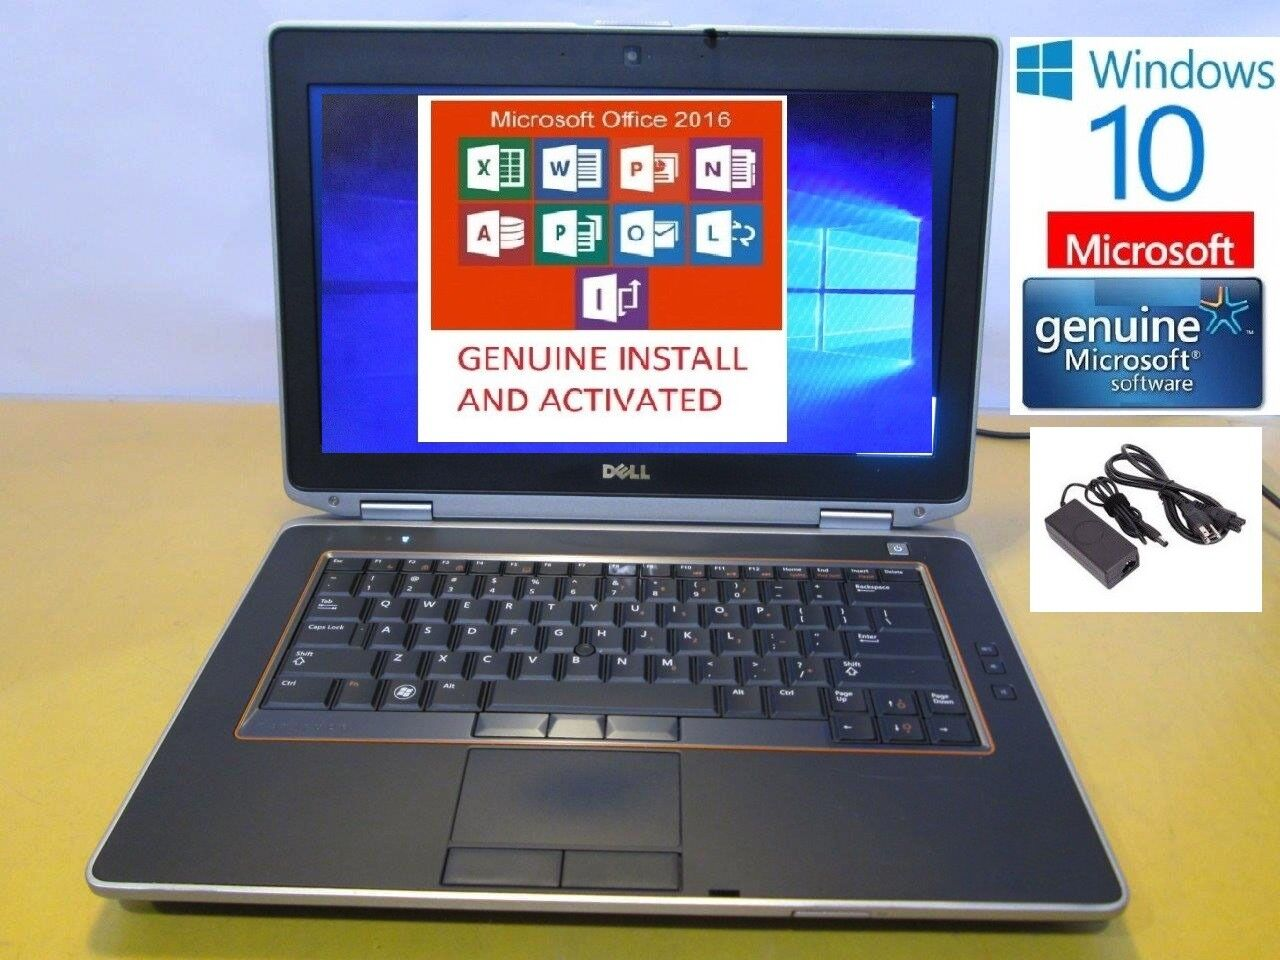 DELL LATITUDE E6320 LAPTOP WINDOWS 10 WIN-INTEL i5 2.5GHz DVD-RW HDMI wifi-,word